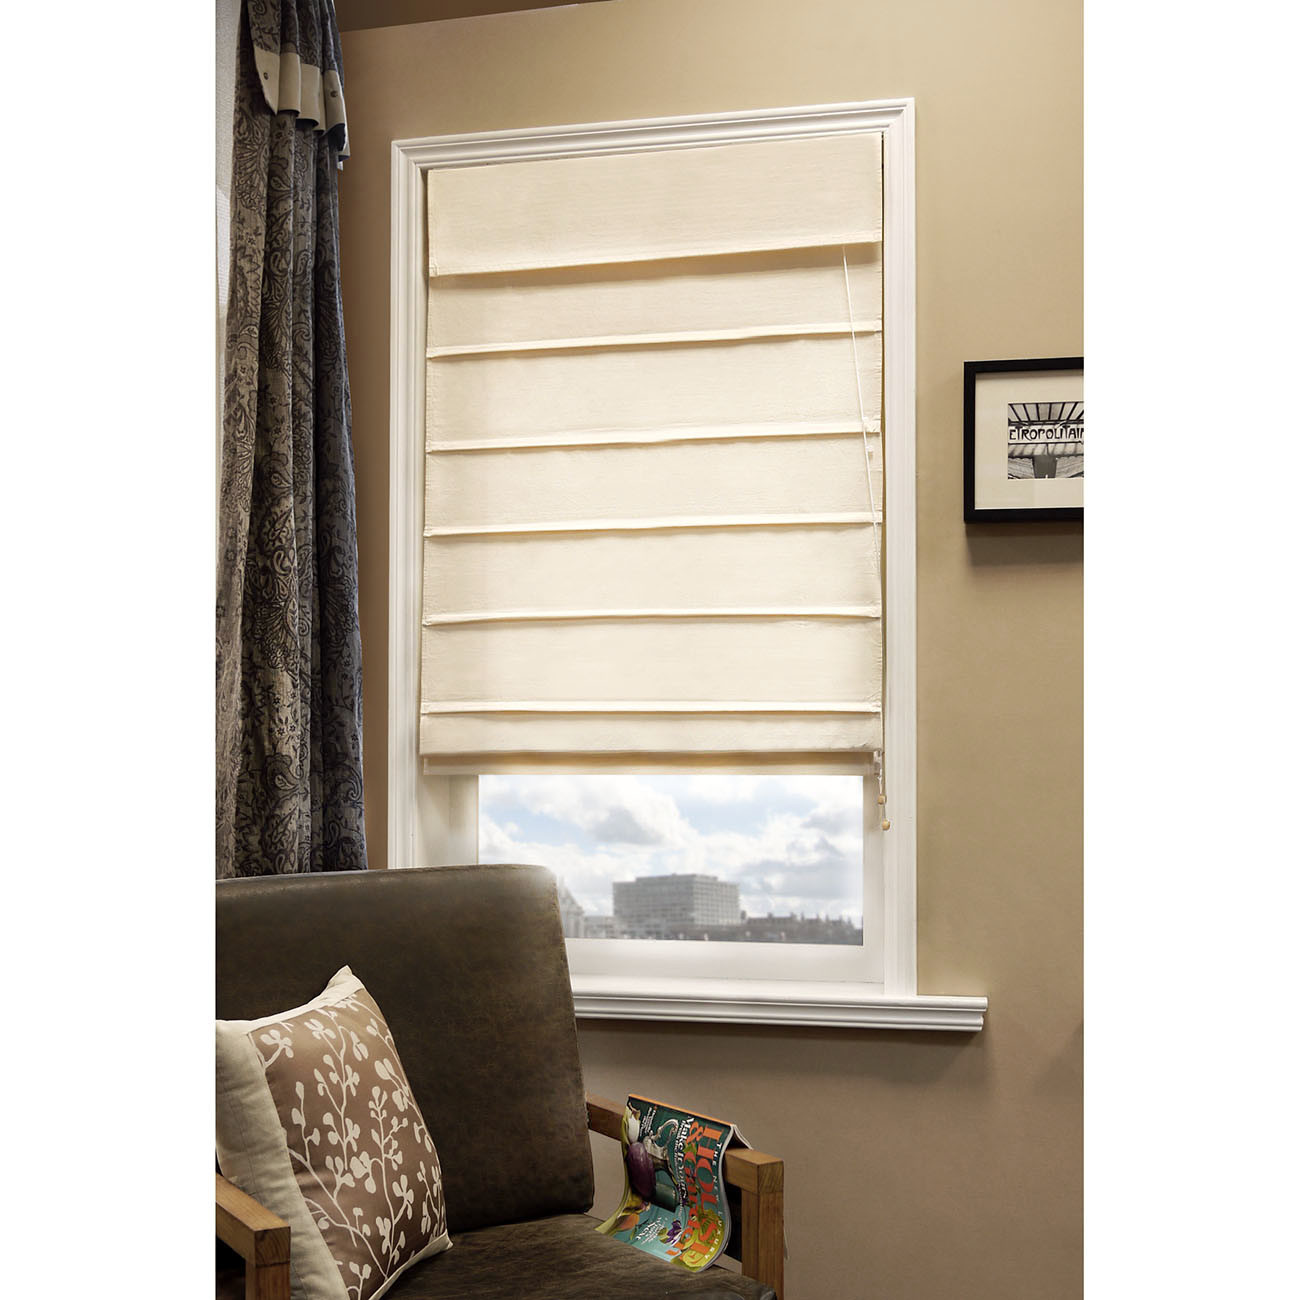 Menards Quincy Il | Menards Window Blinds | Menards Vertical Window Blinds